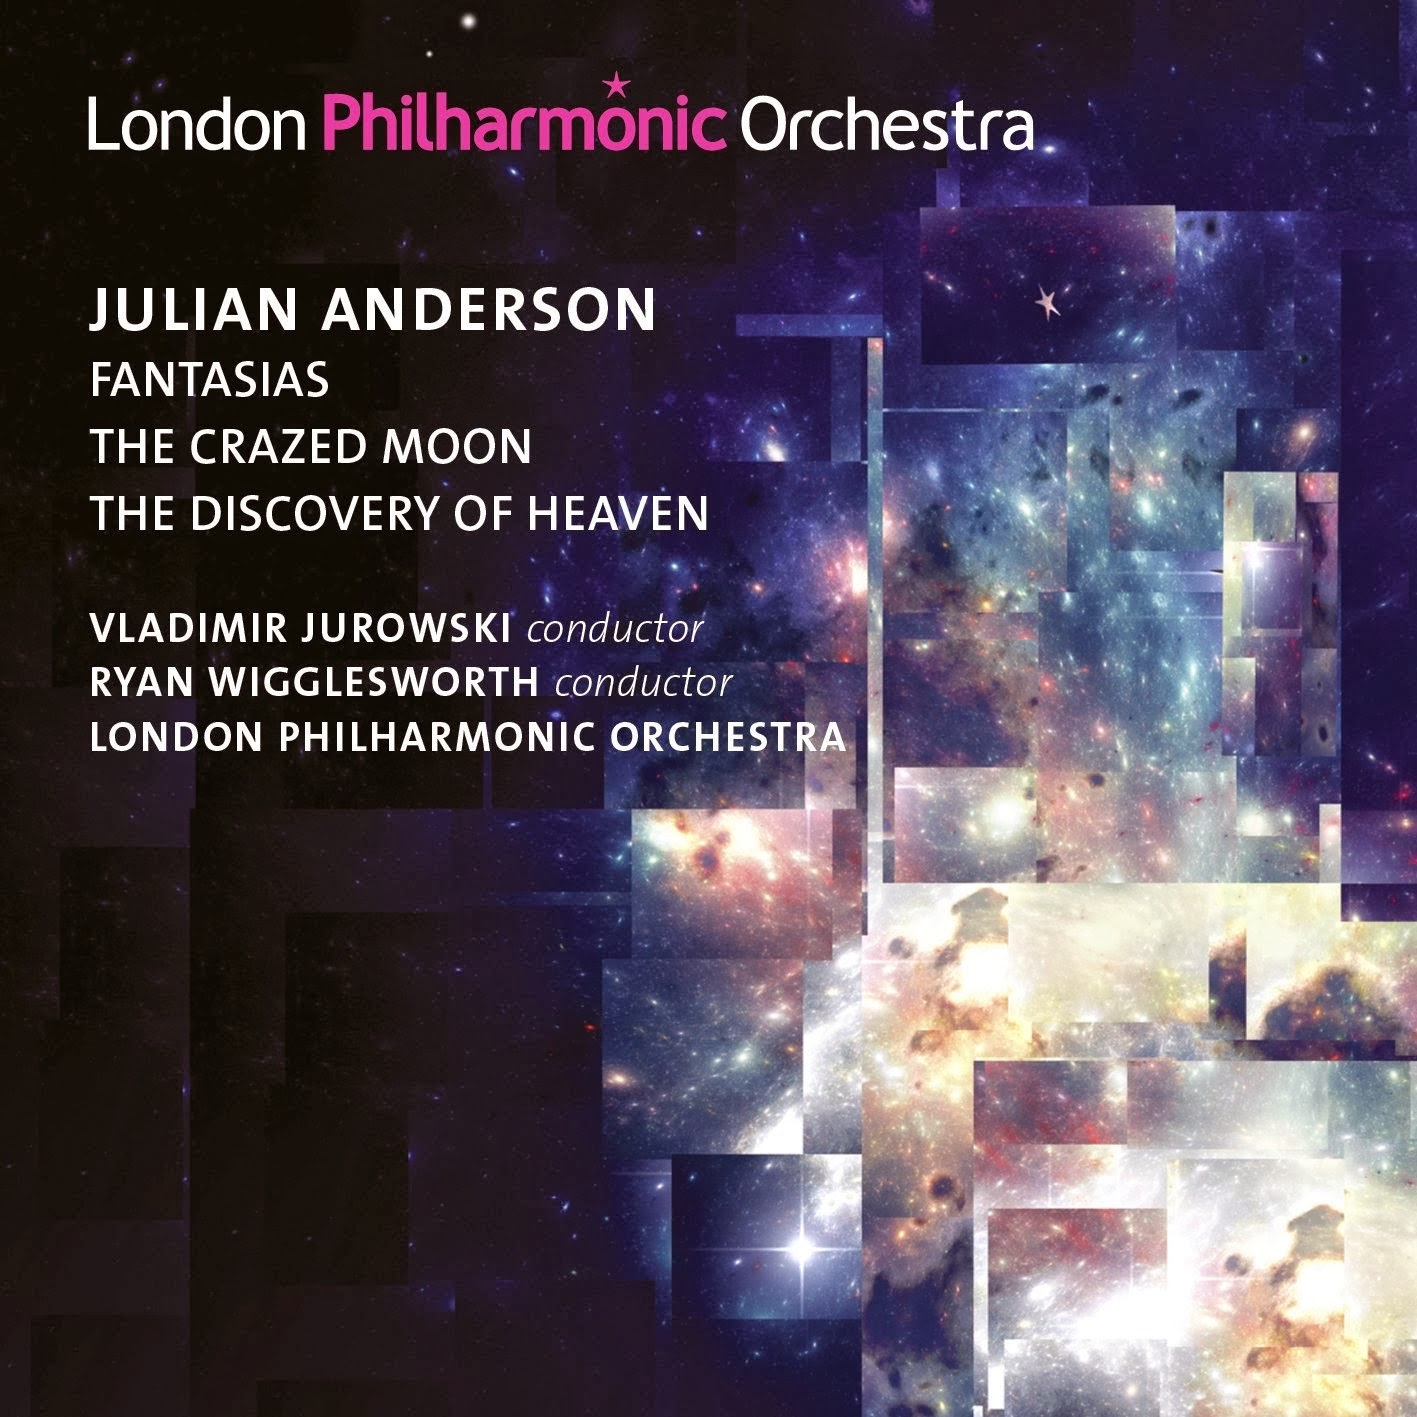 cd review an echo from heaven orchestral works of julian anderson on lpo